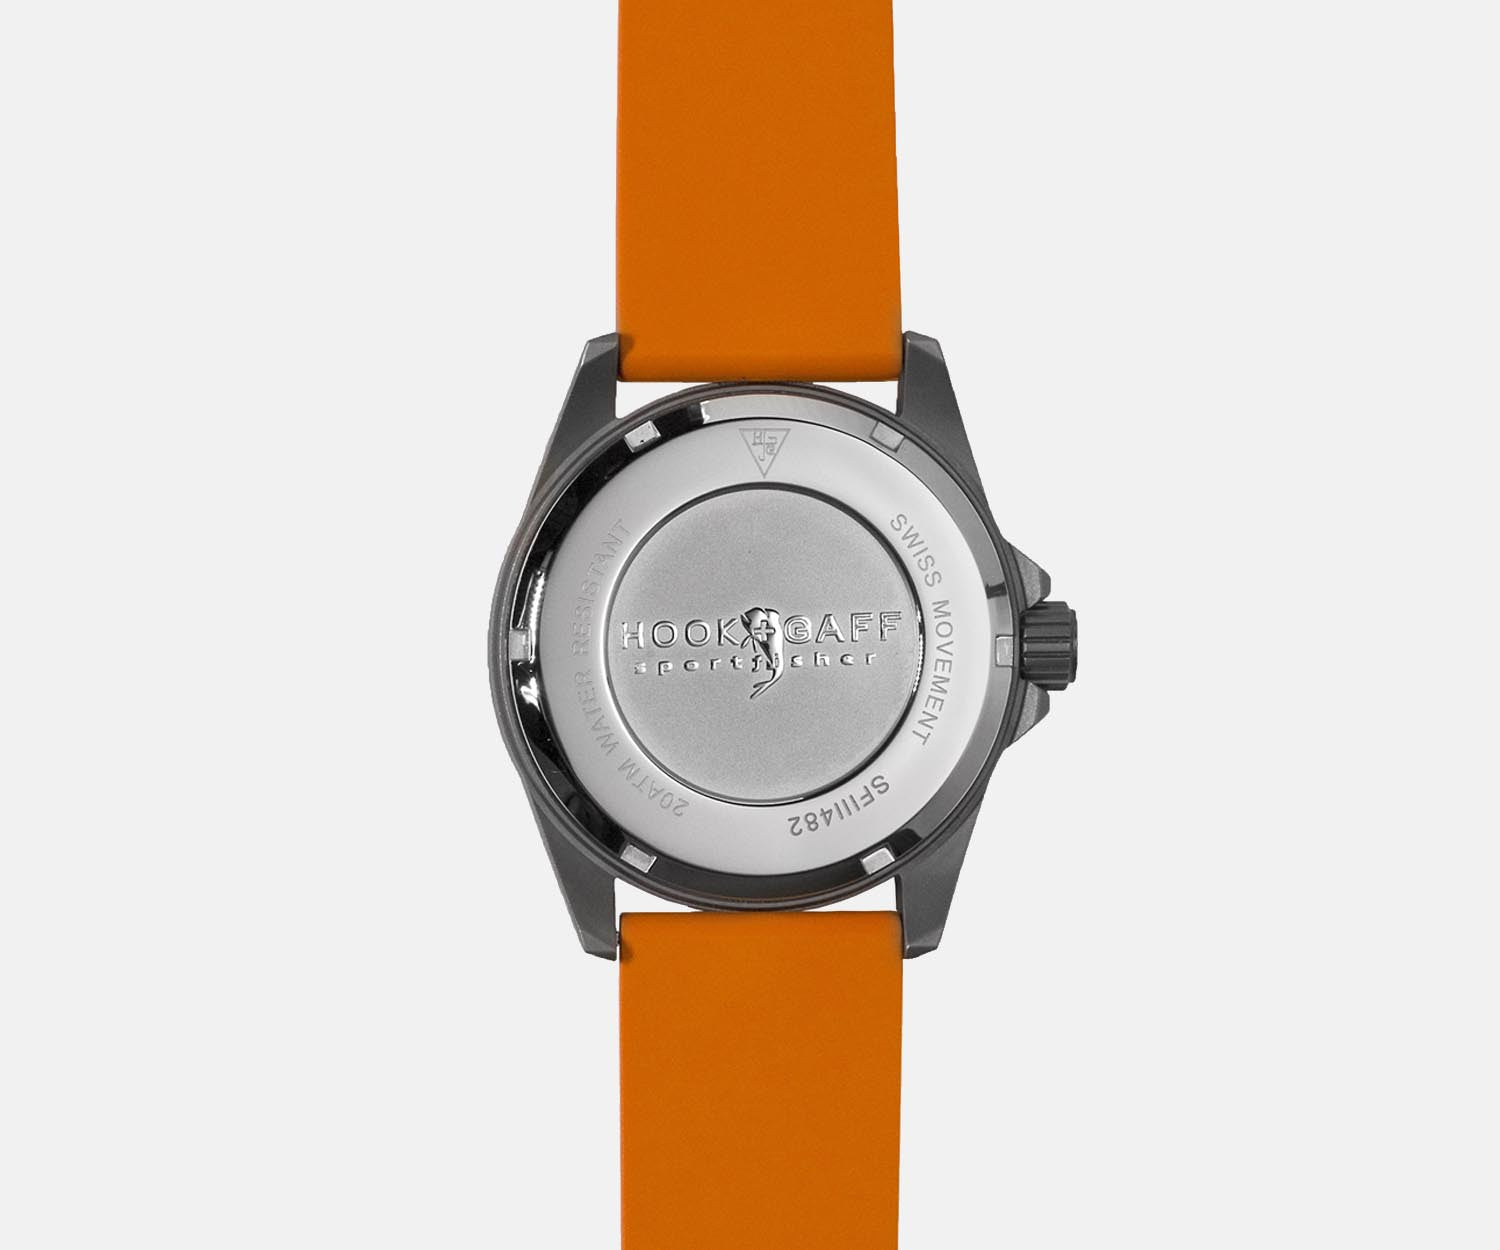 Sportfisher II Classic Blue Dial Watch - Orange Dive Strap - Back